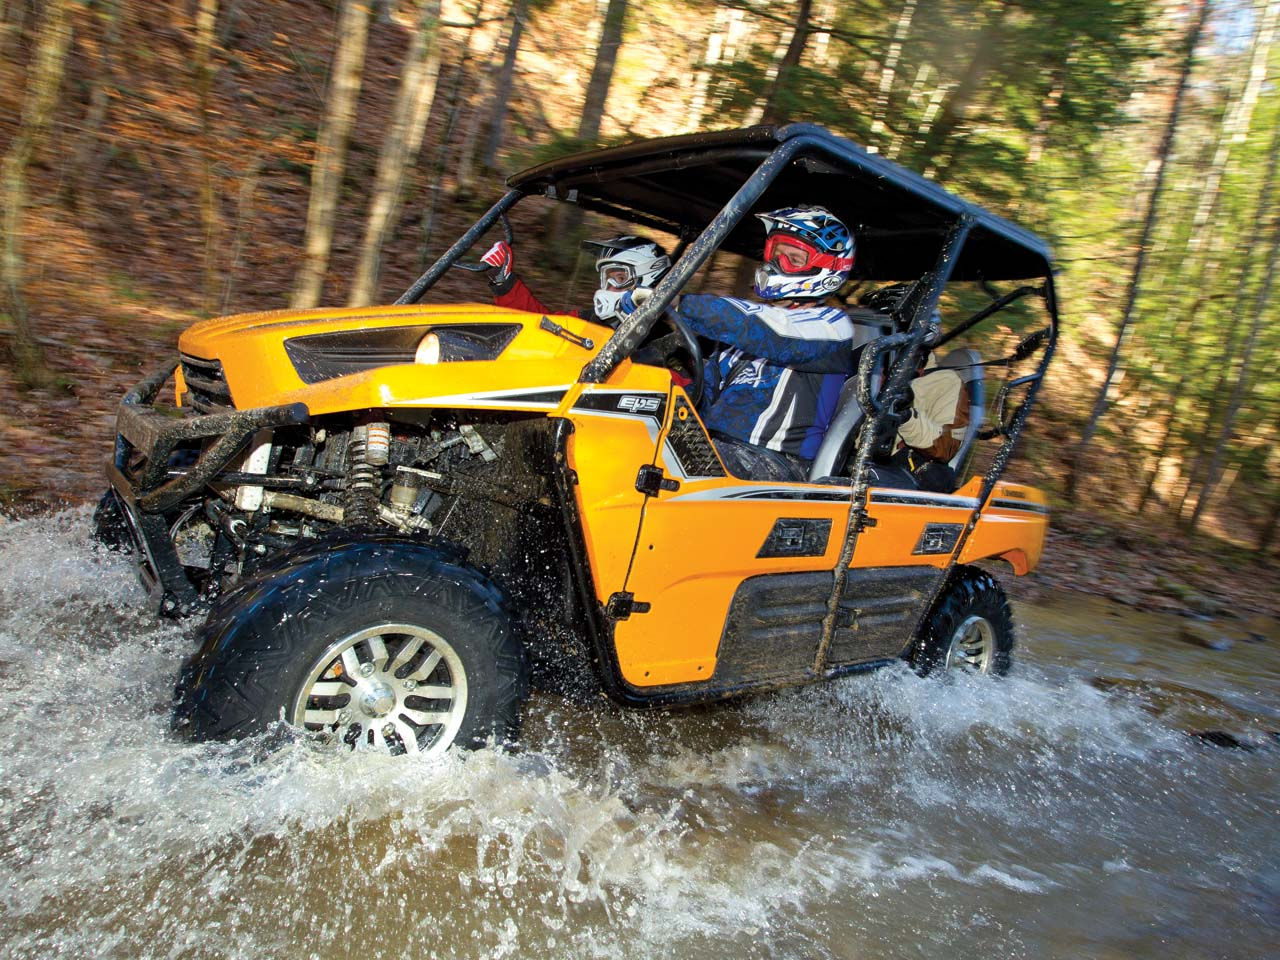 2012 kawasaki teryx 4 750 4x4 review | atv illustrated